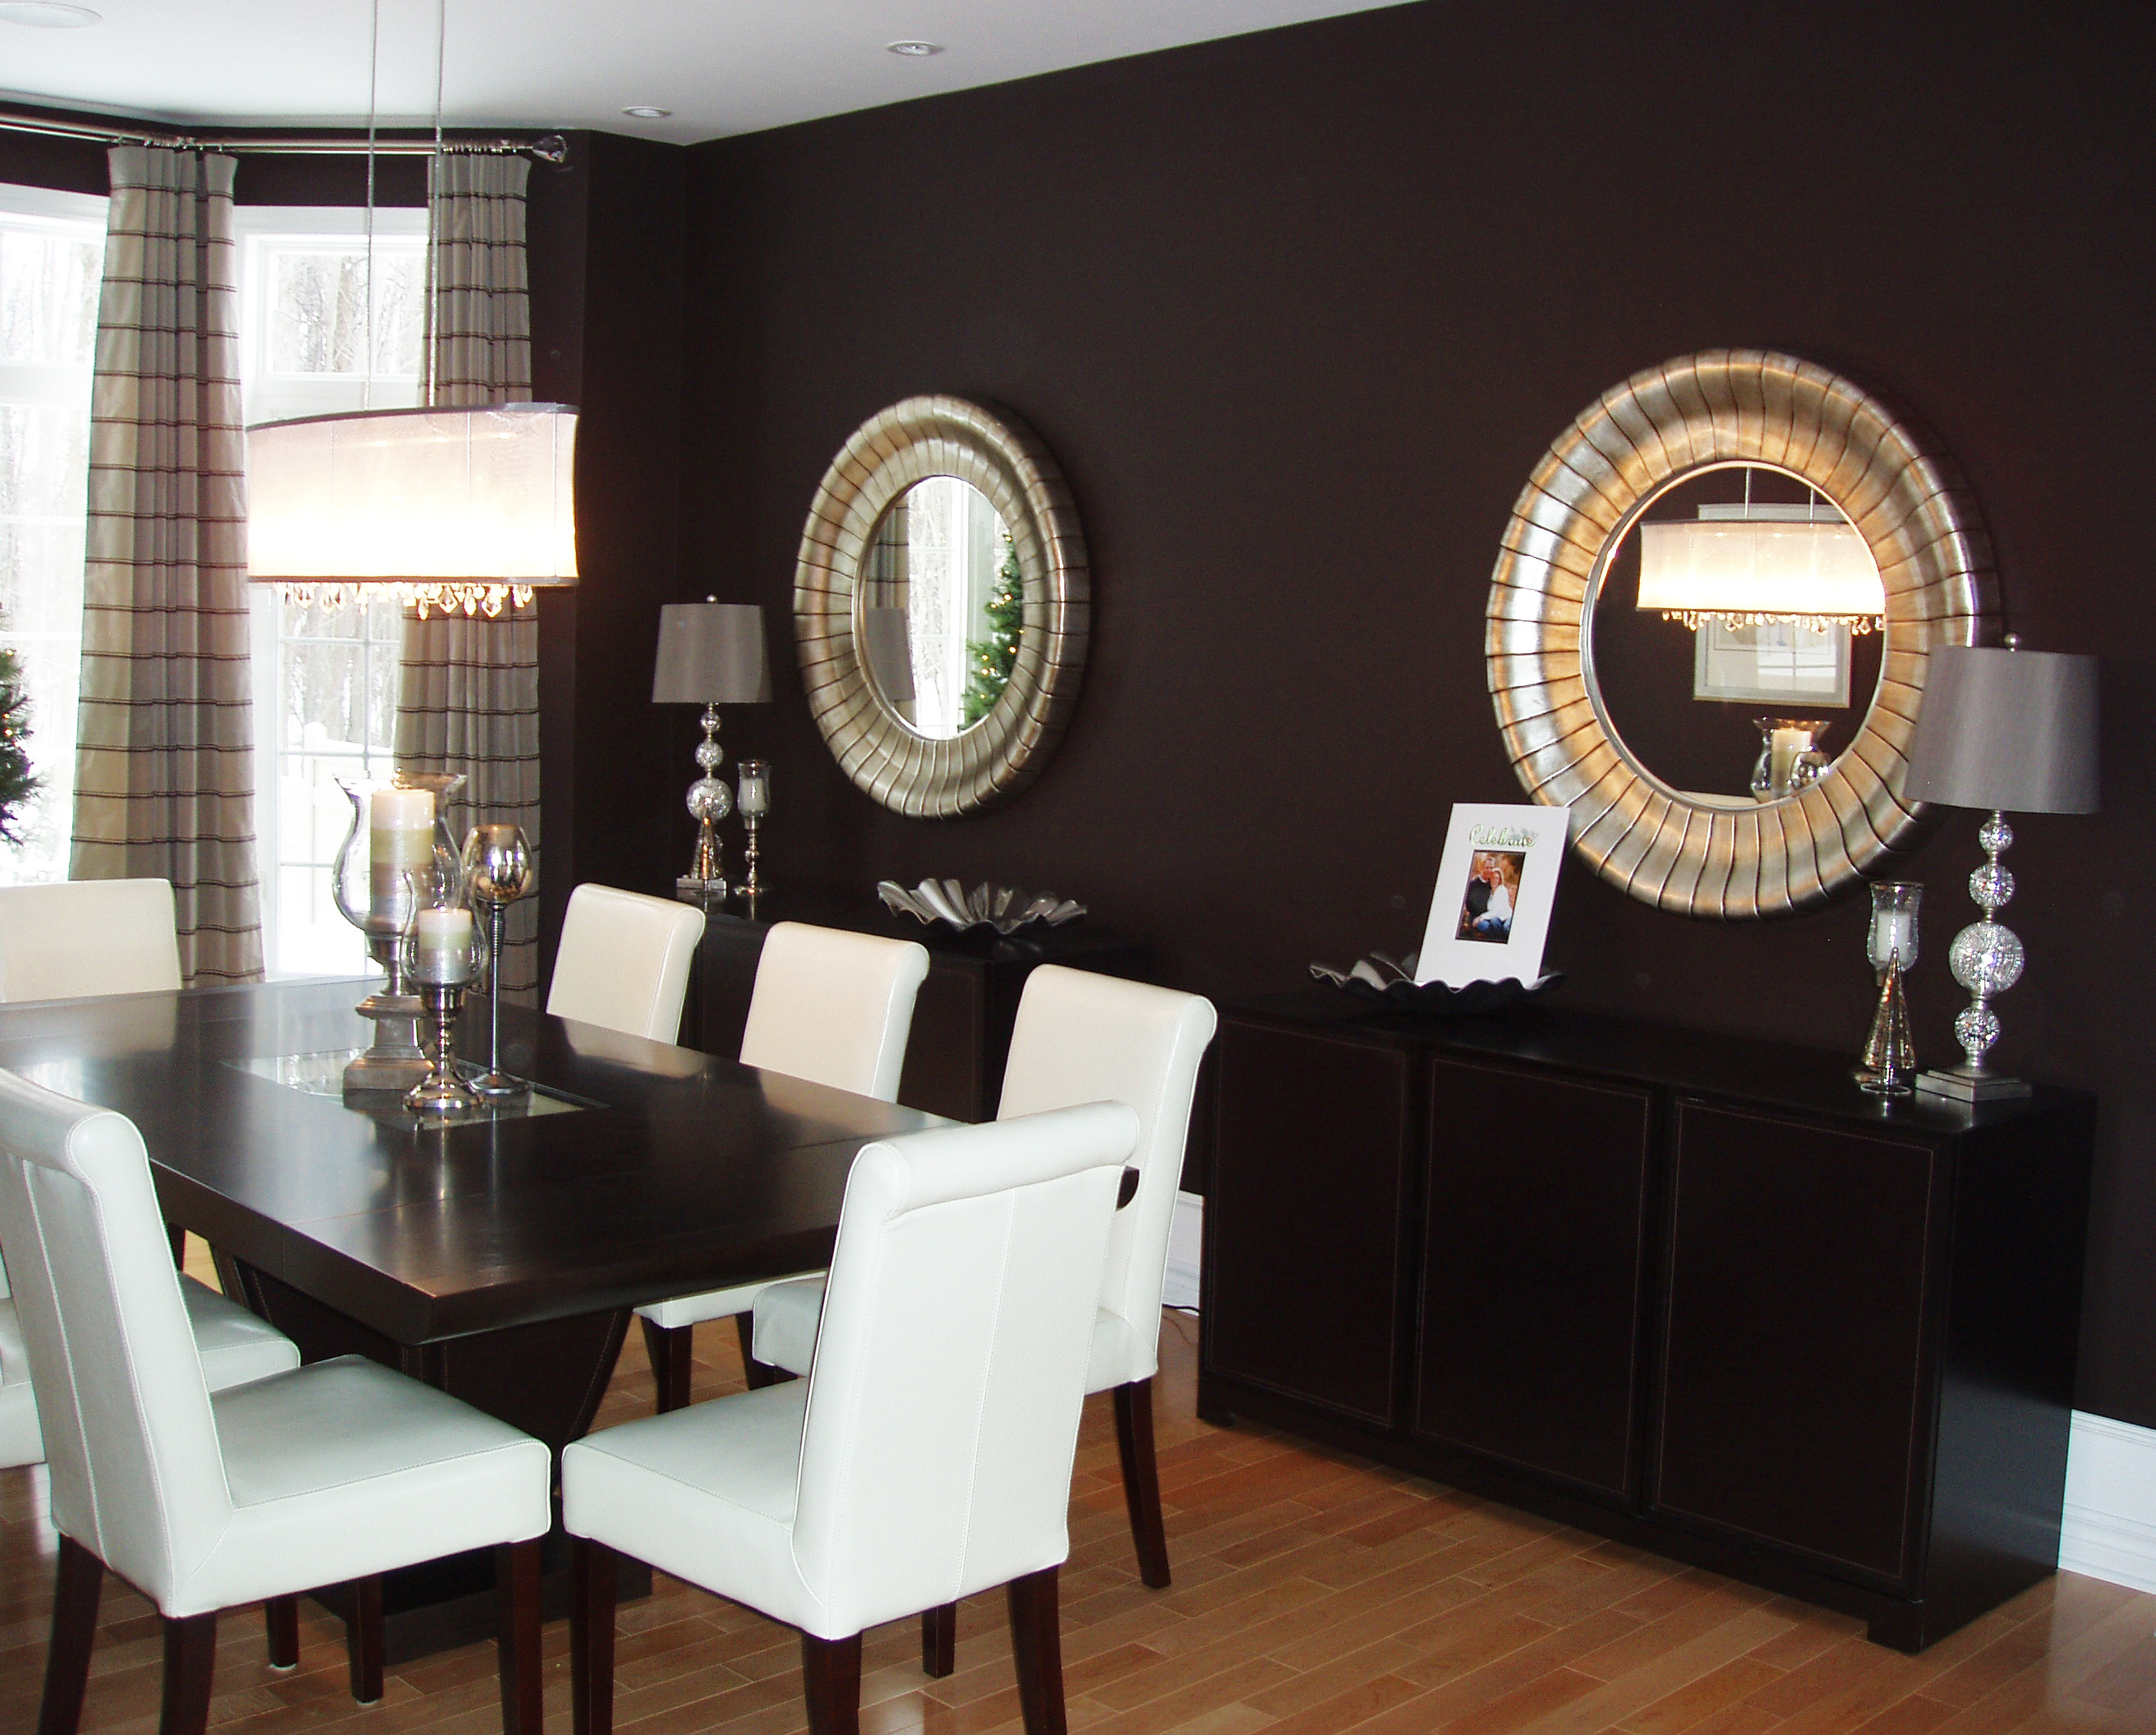 Accent Wall with Interior Decor